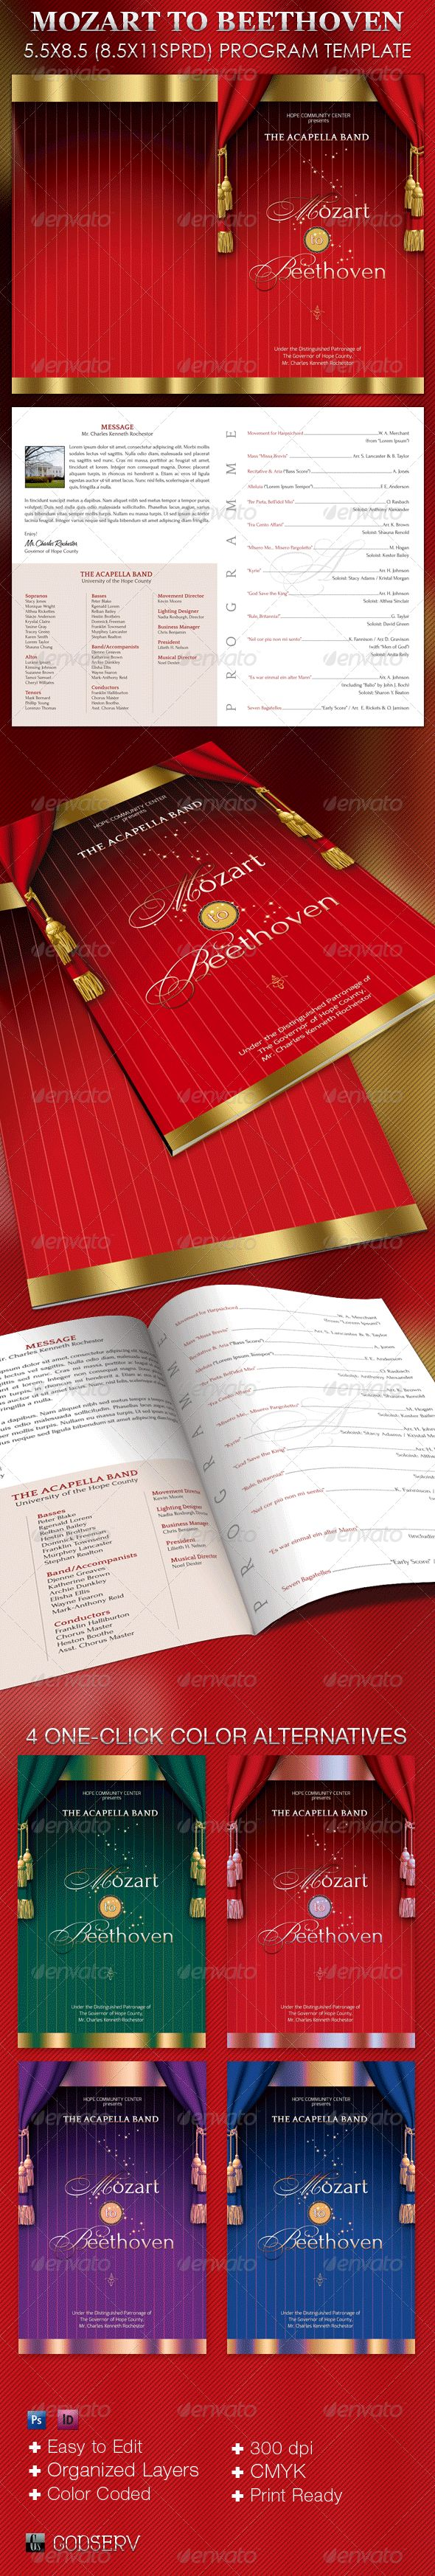 best images about christmas programs for church mozart beethoven program template